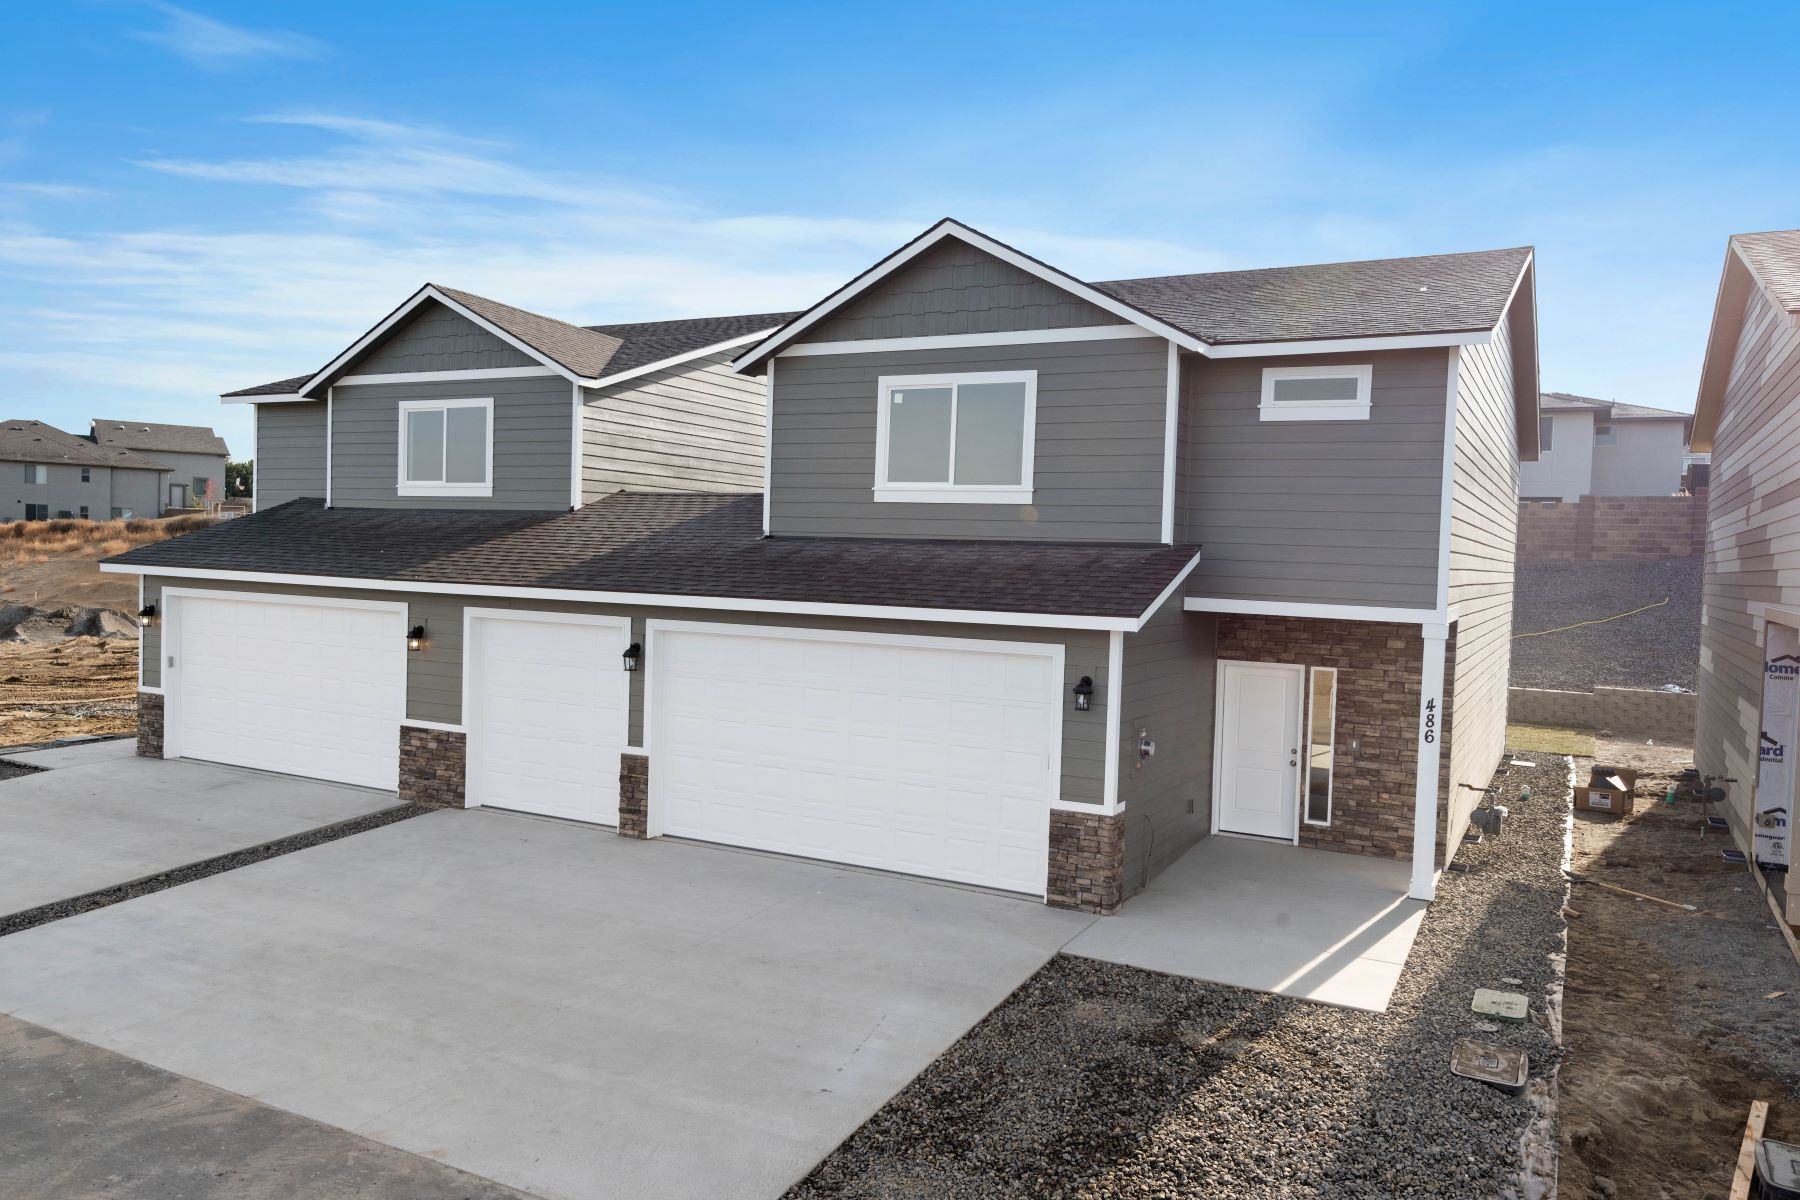 townhouses for Sale at New townhome community with views! 432 Bedrock Loop West Richland, Washington 99353 United States